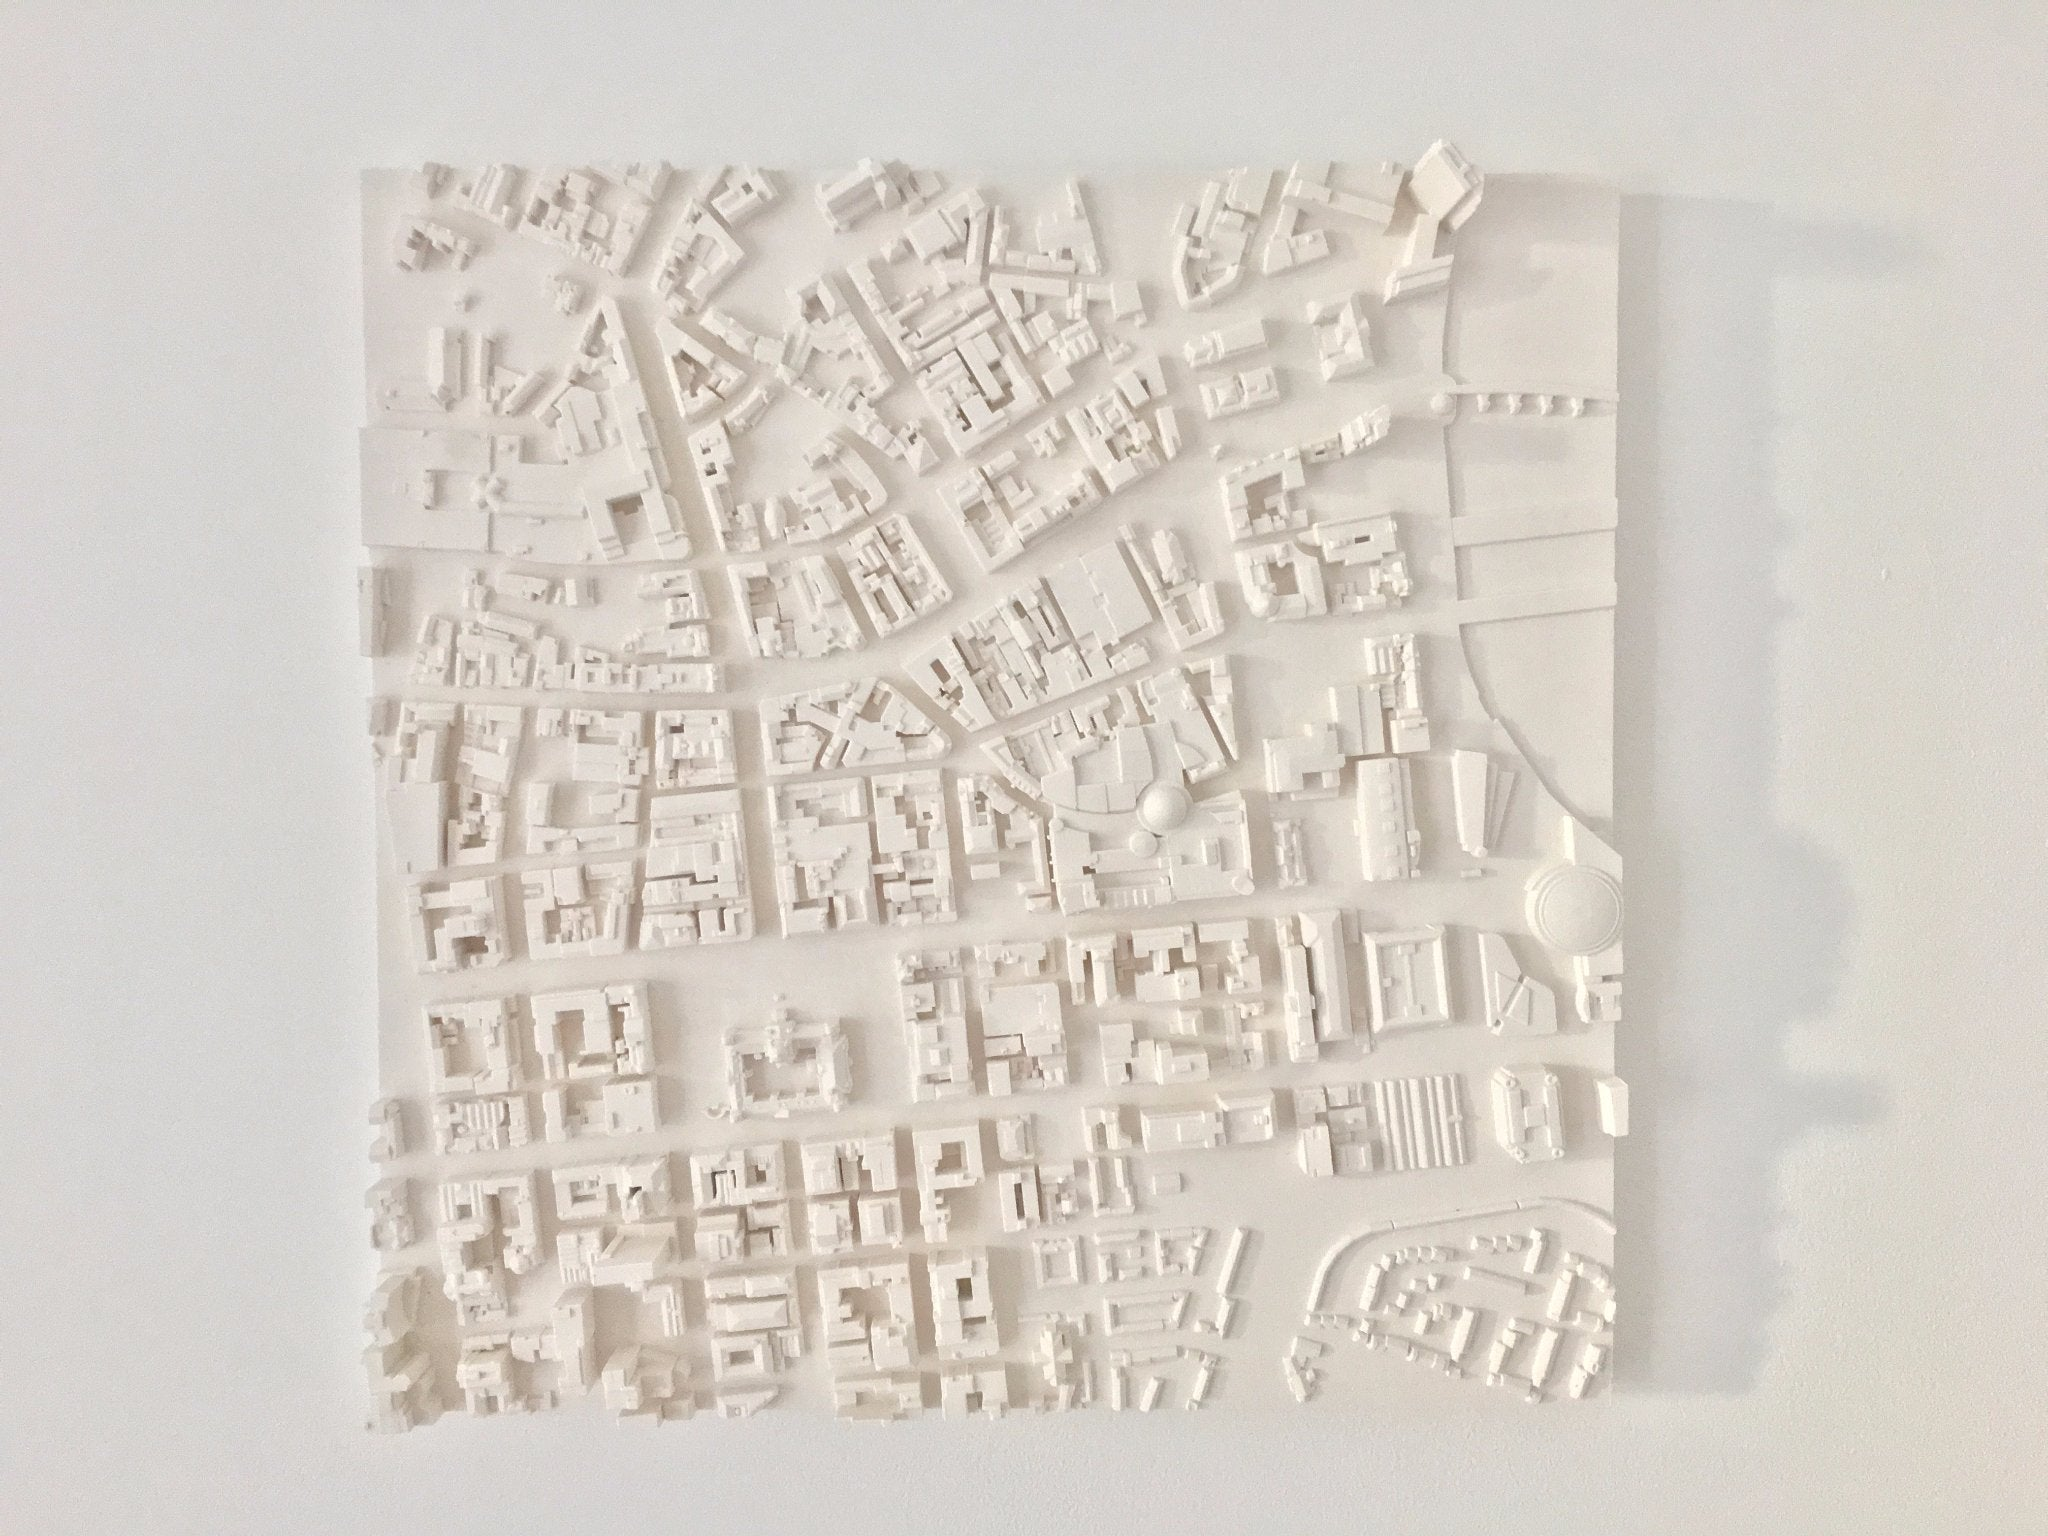 plaster cast model of Belfast city map